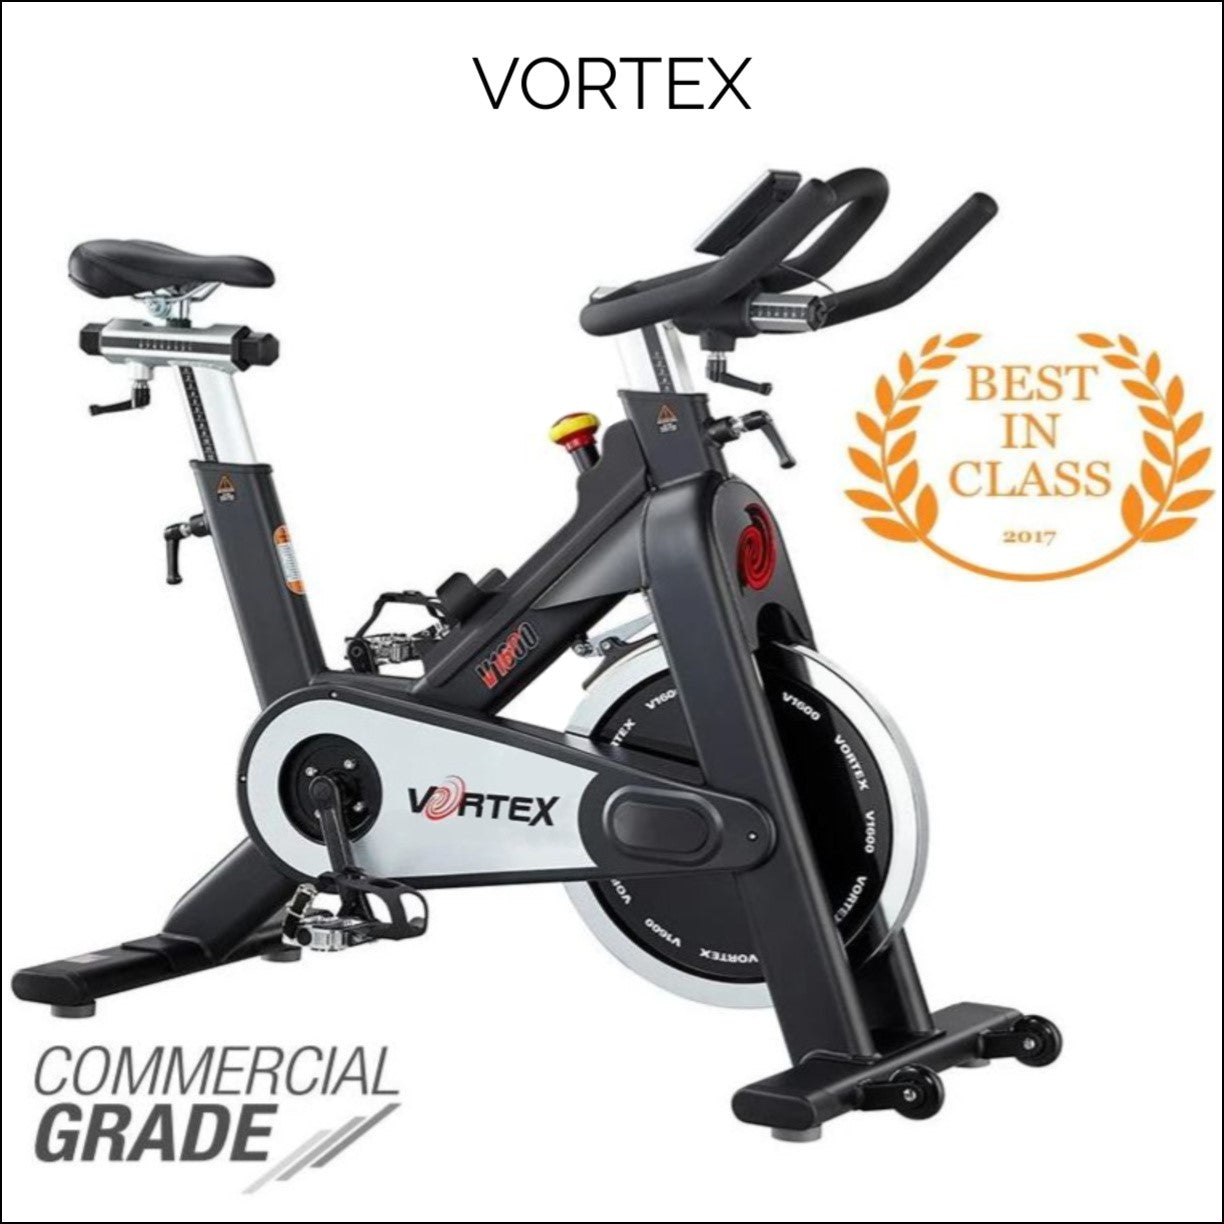 The Vortex V1600 Spin Bike allows you to simulate the motion of biking in an aerobics exercise. The flywheel feature allows you to scale up the difficulty of the exercise as you pedal harder.